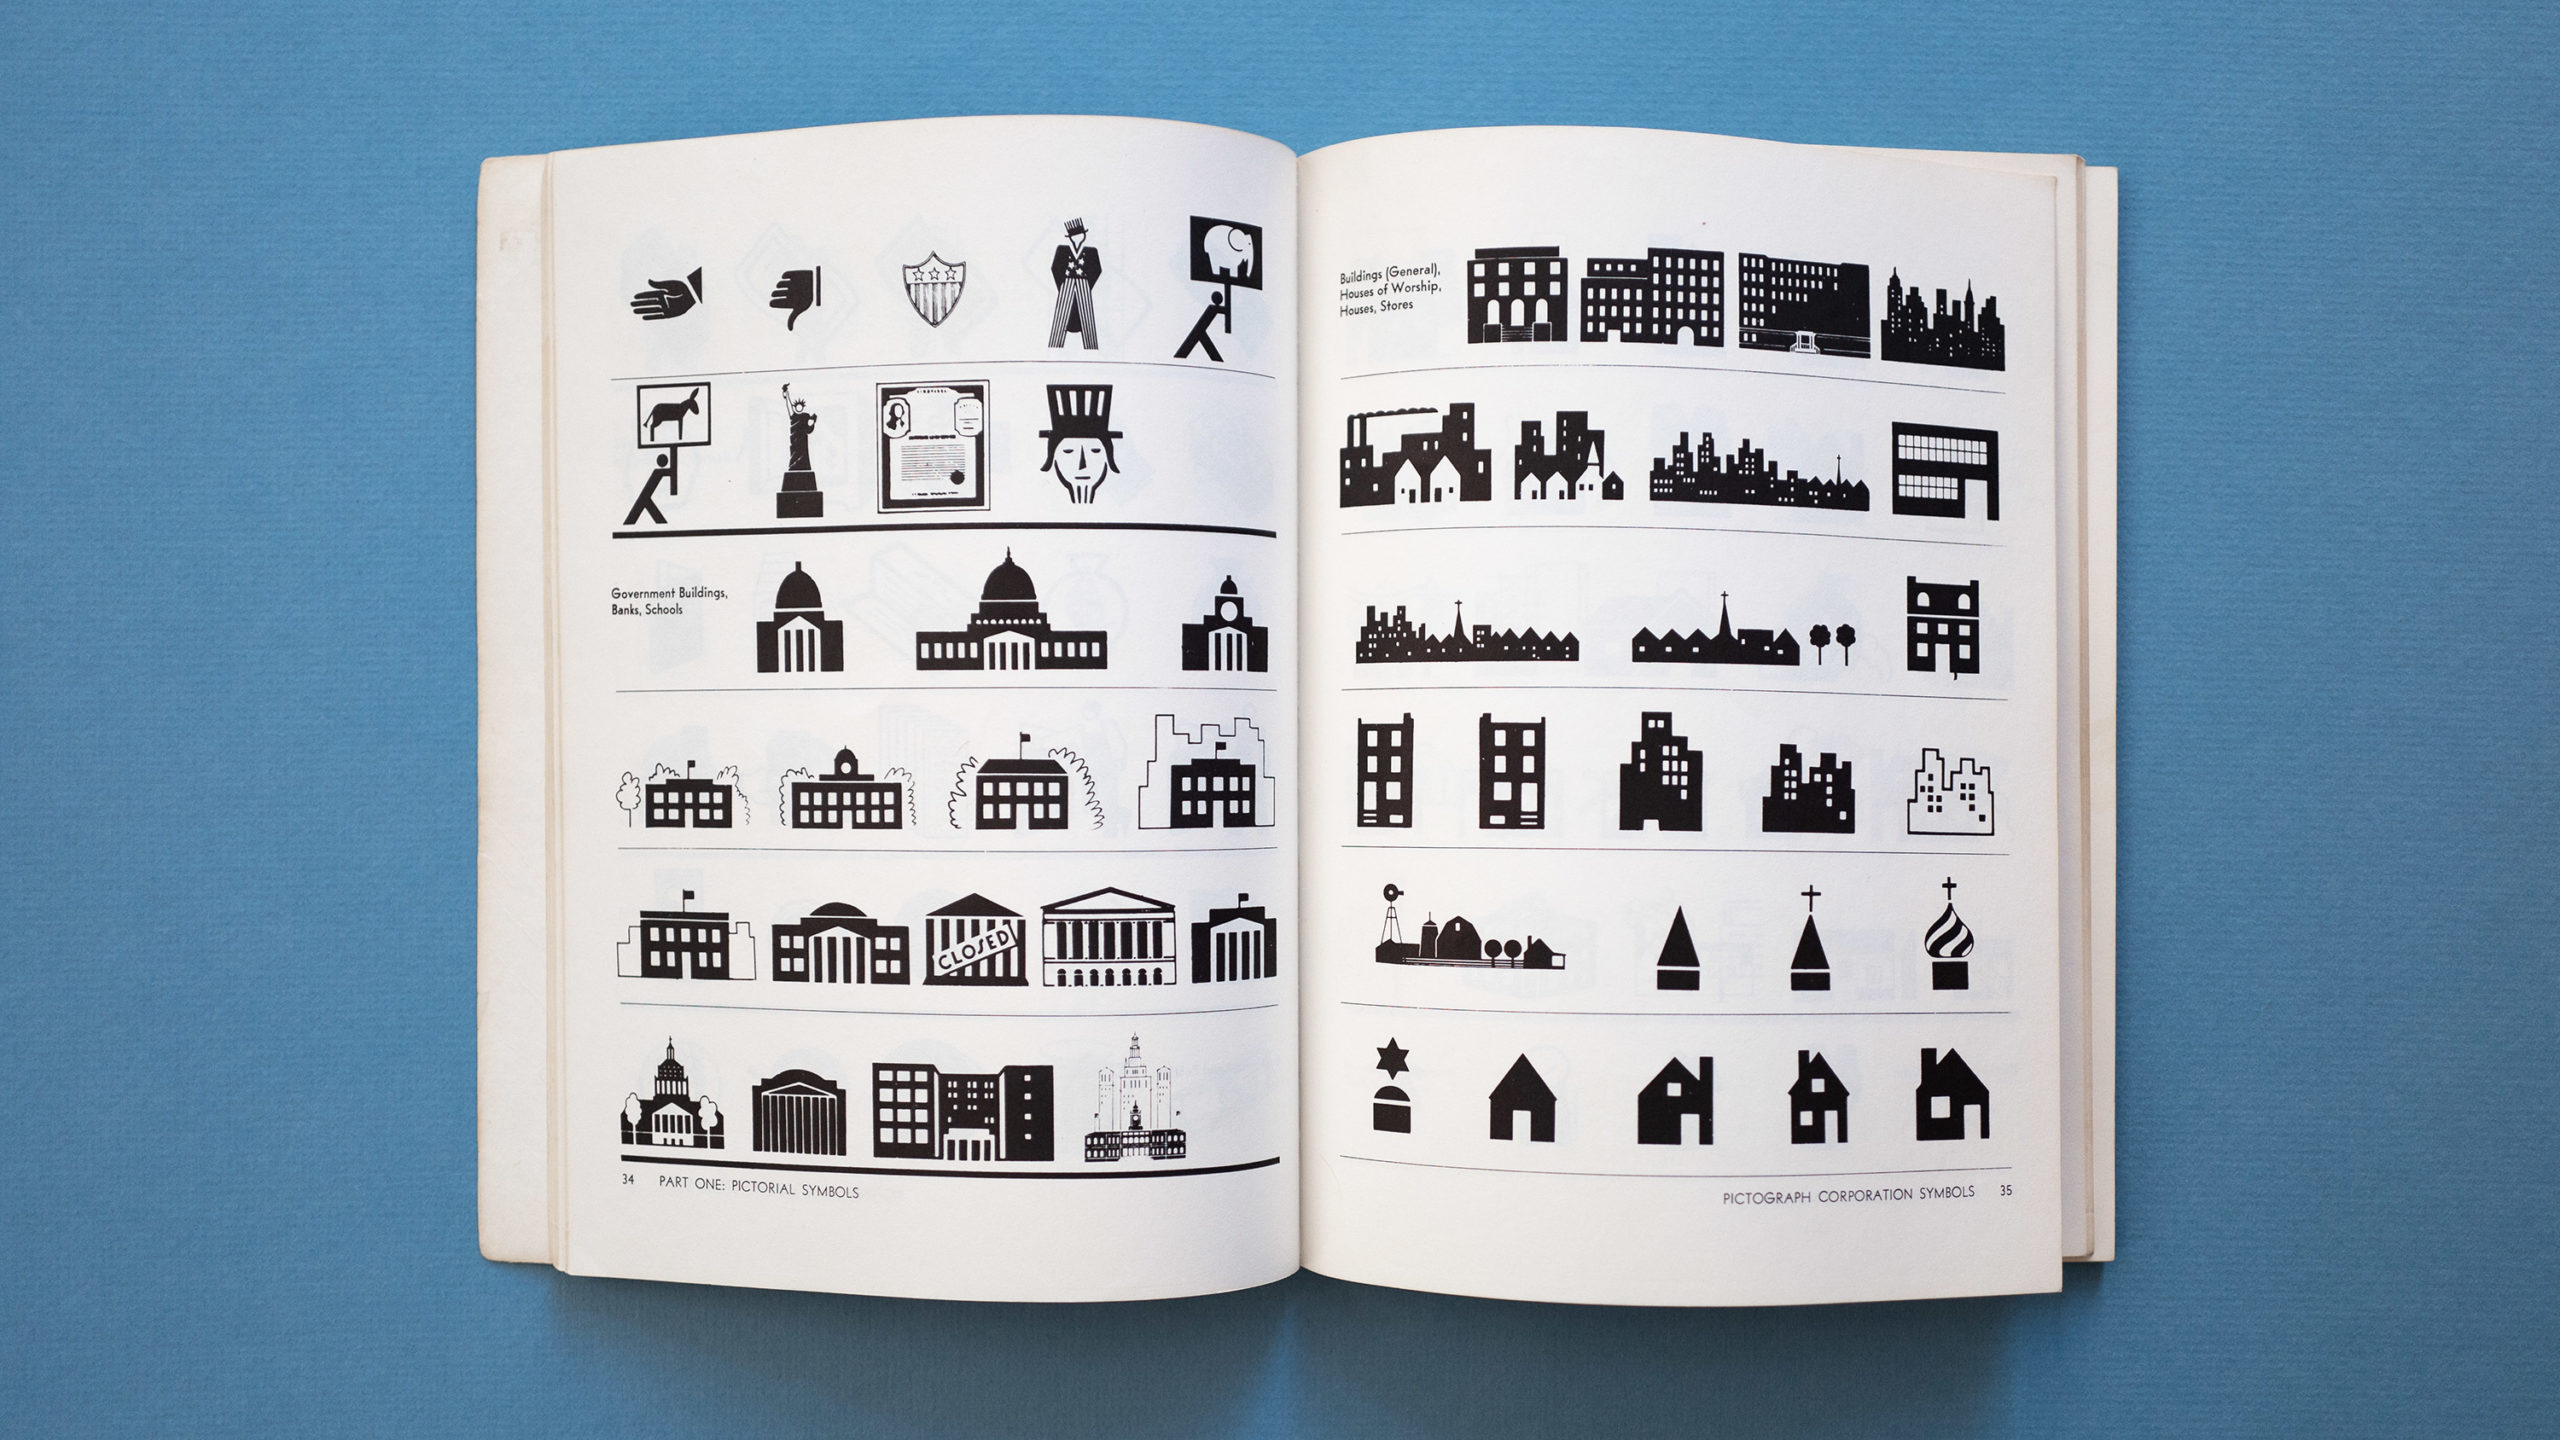 Icons of buildings